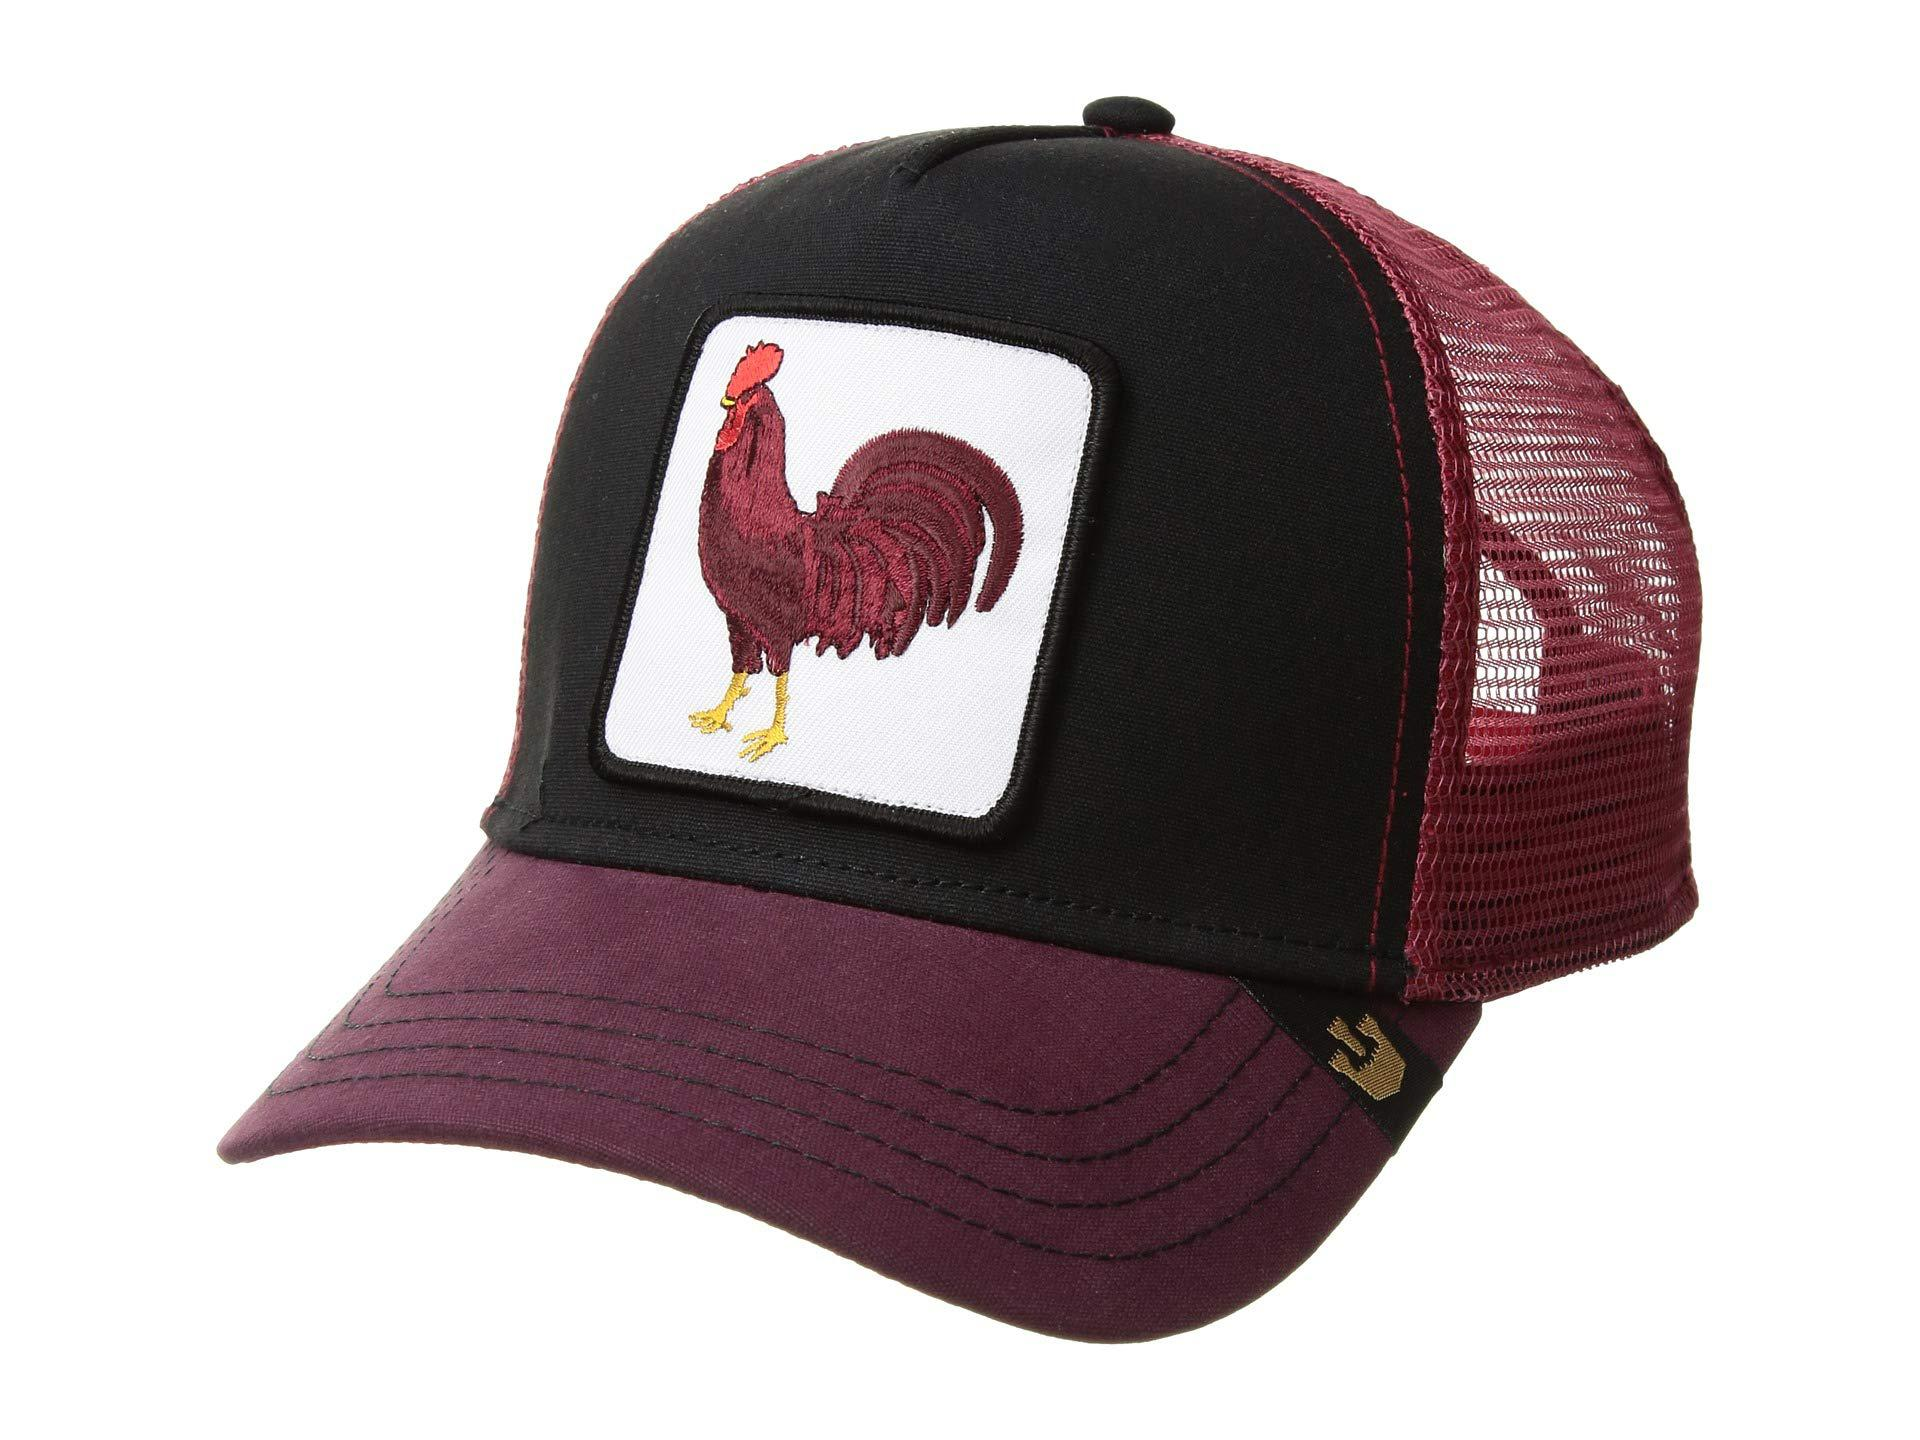 Lyst - Goorin Bros Animal Farm Snap Back Trucker Hat (brown Beaver ... da9660d07496